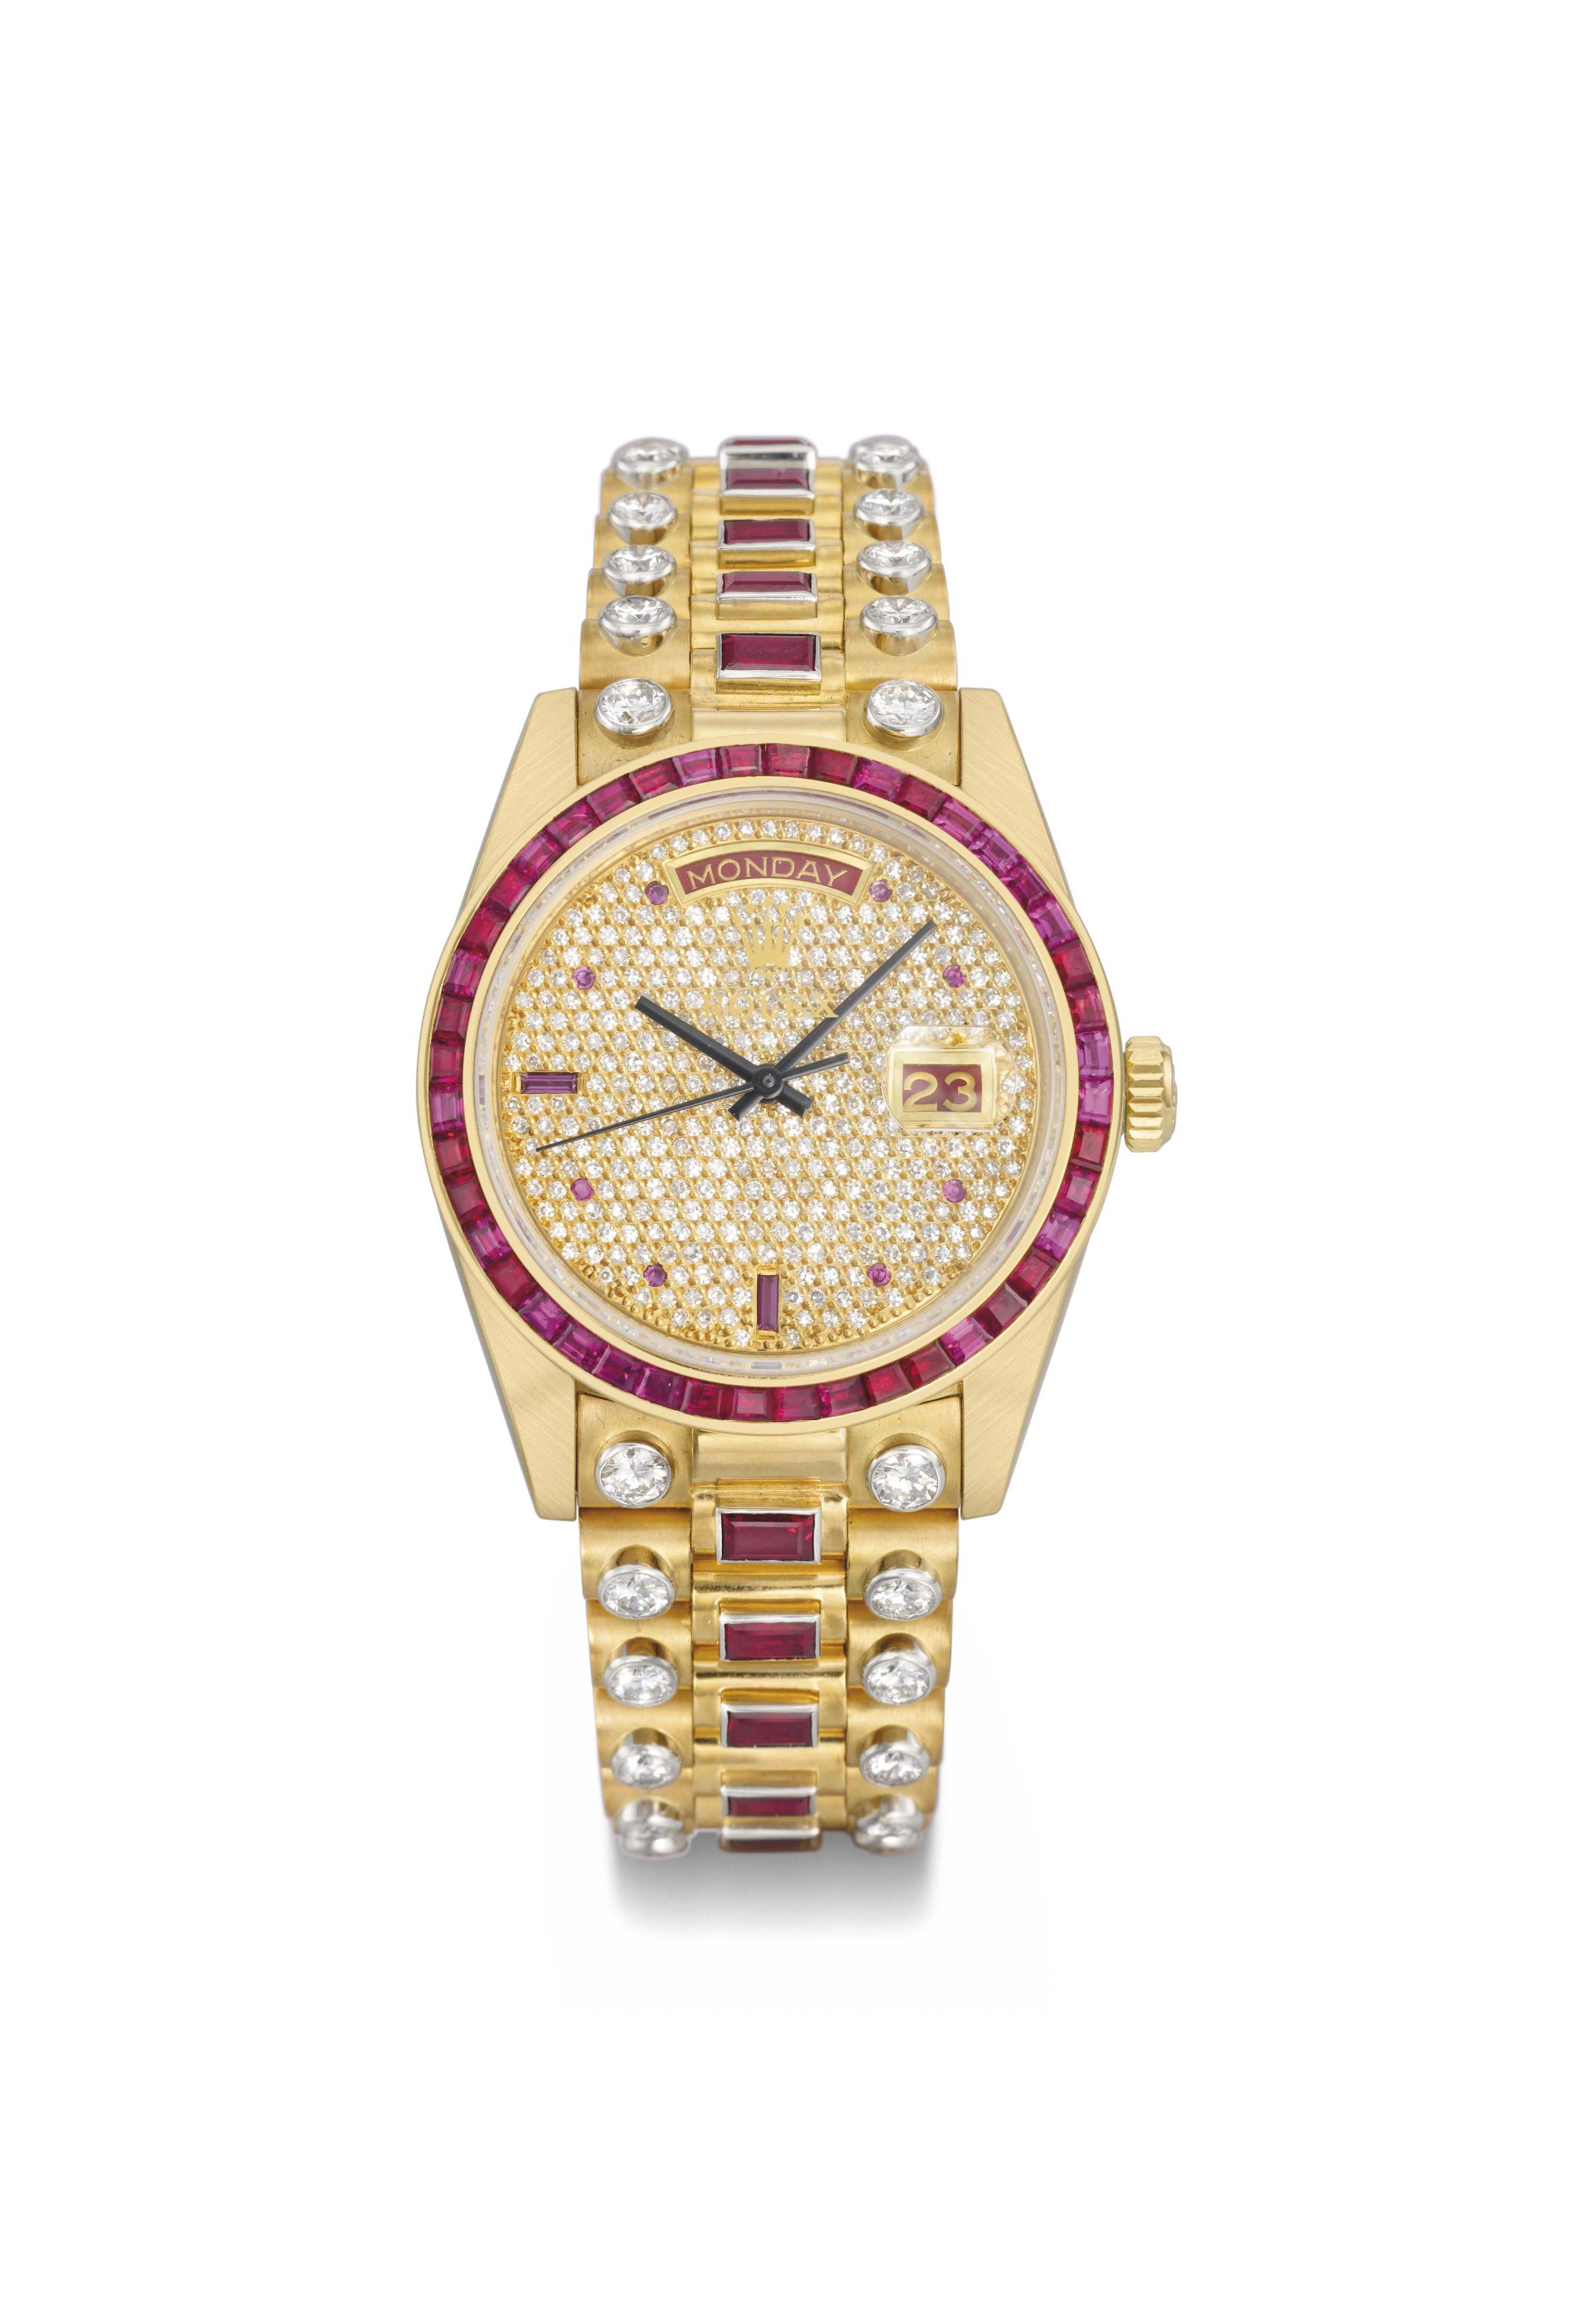 b82bef2b135 Rolex. An extremely rare and attractive 18K gold, diamond and ruby-set  calendar wristwatch with sweep centre seconds and bracelet